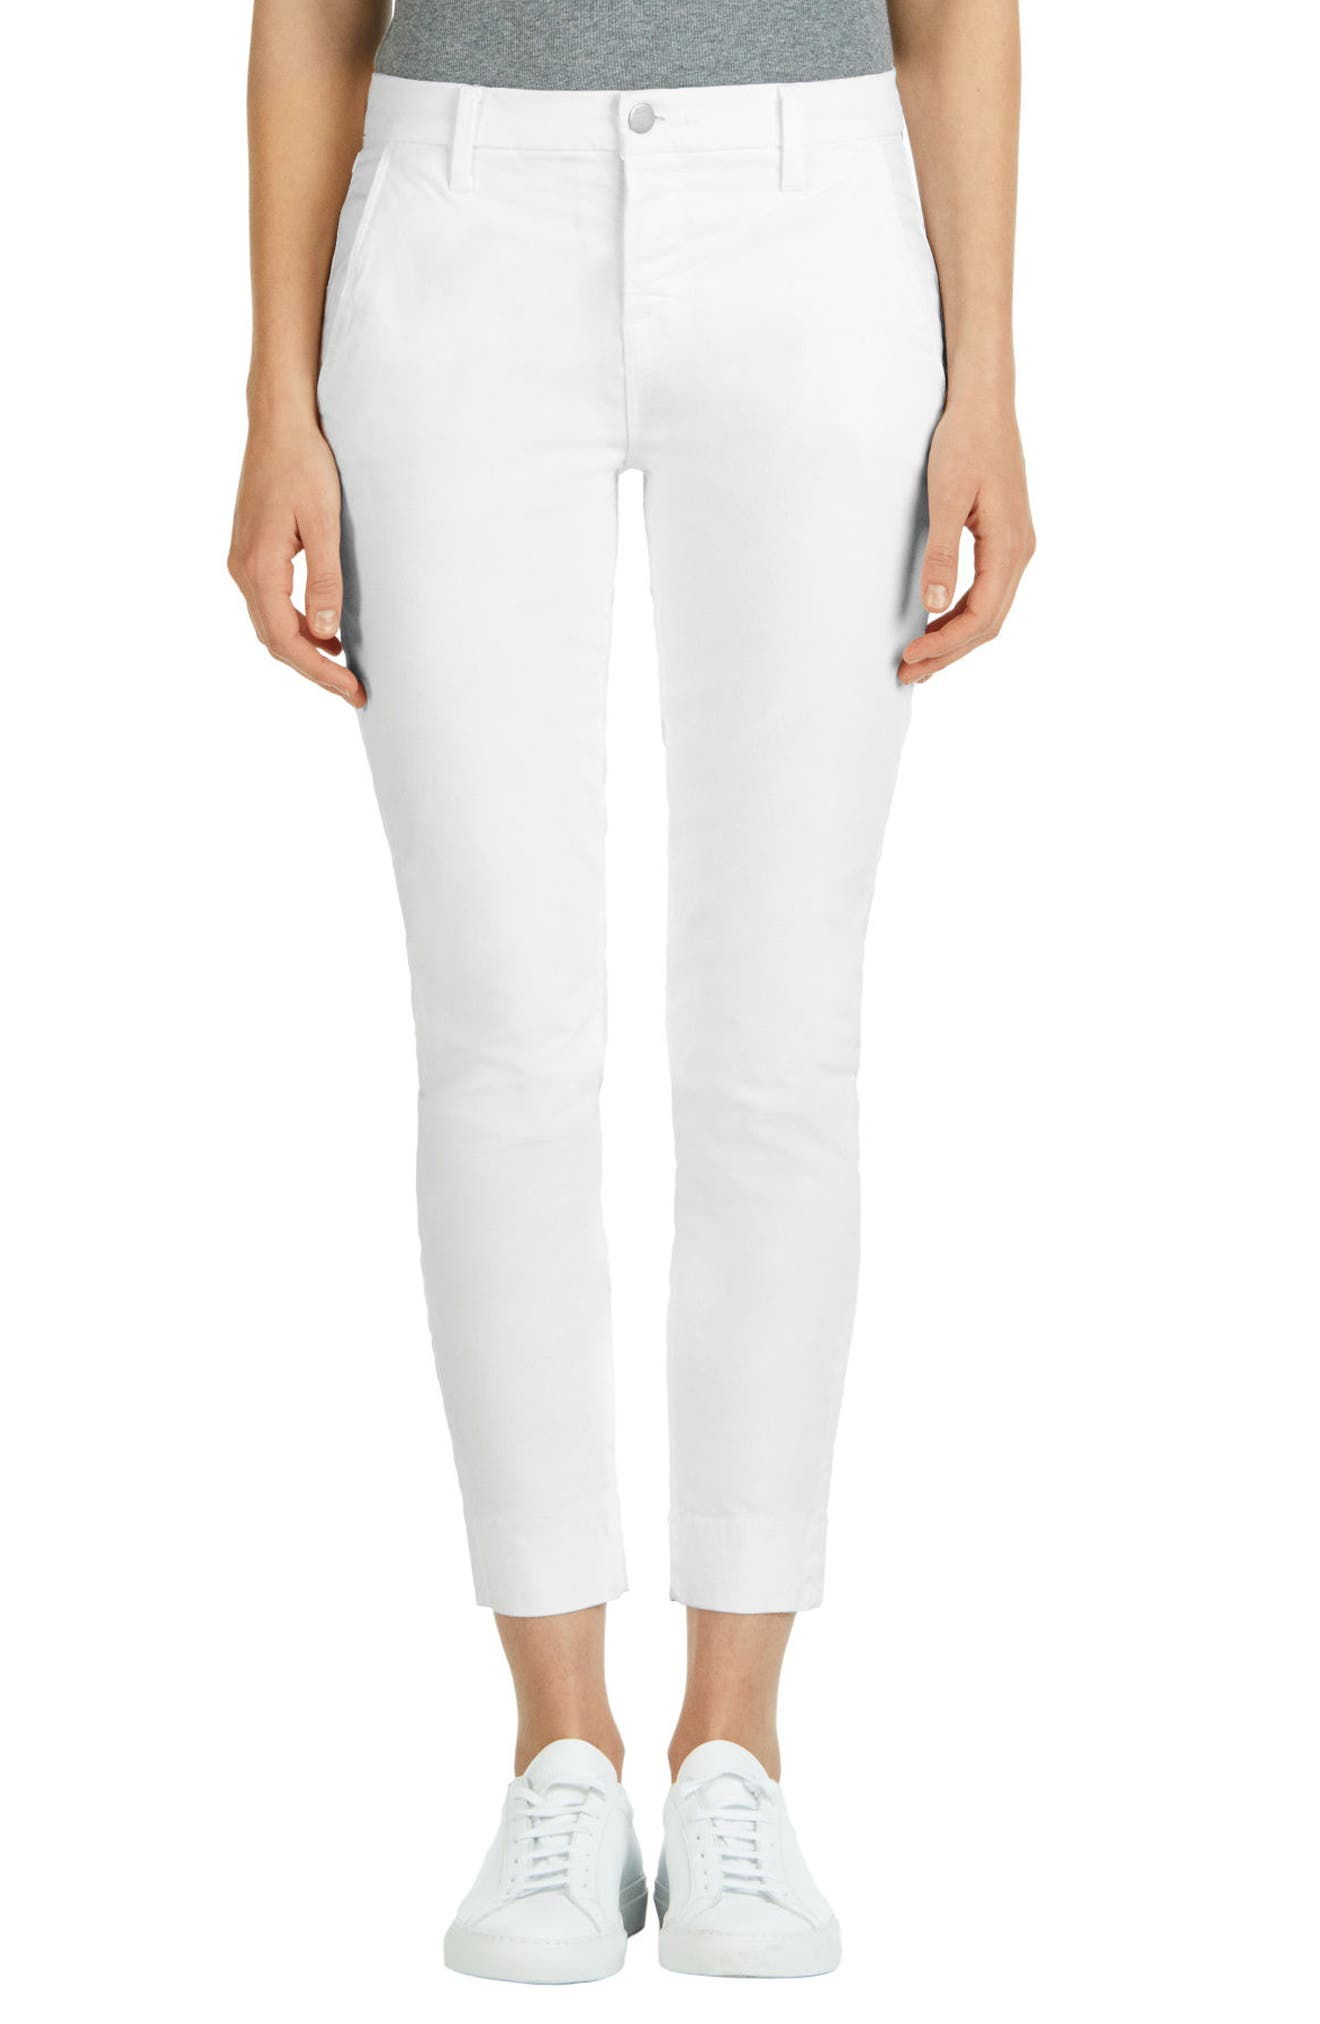 J BRAND Josie Tapered Leg Crop Trousers